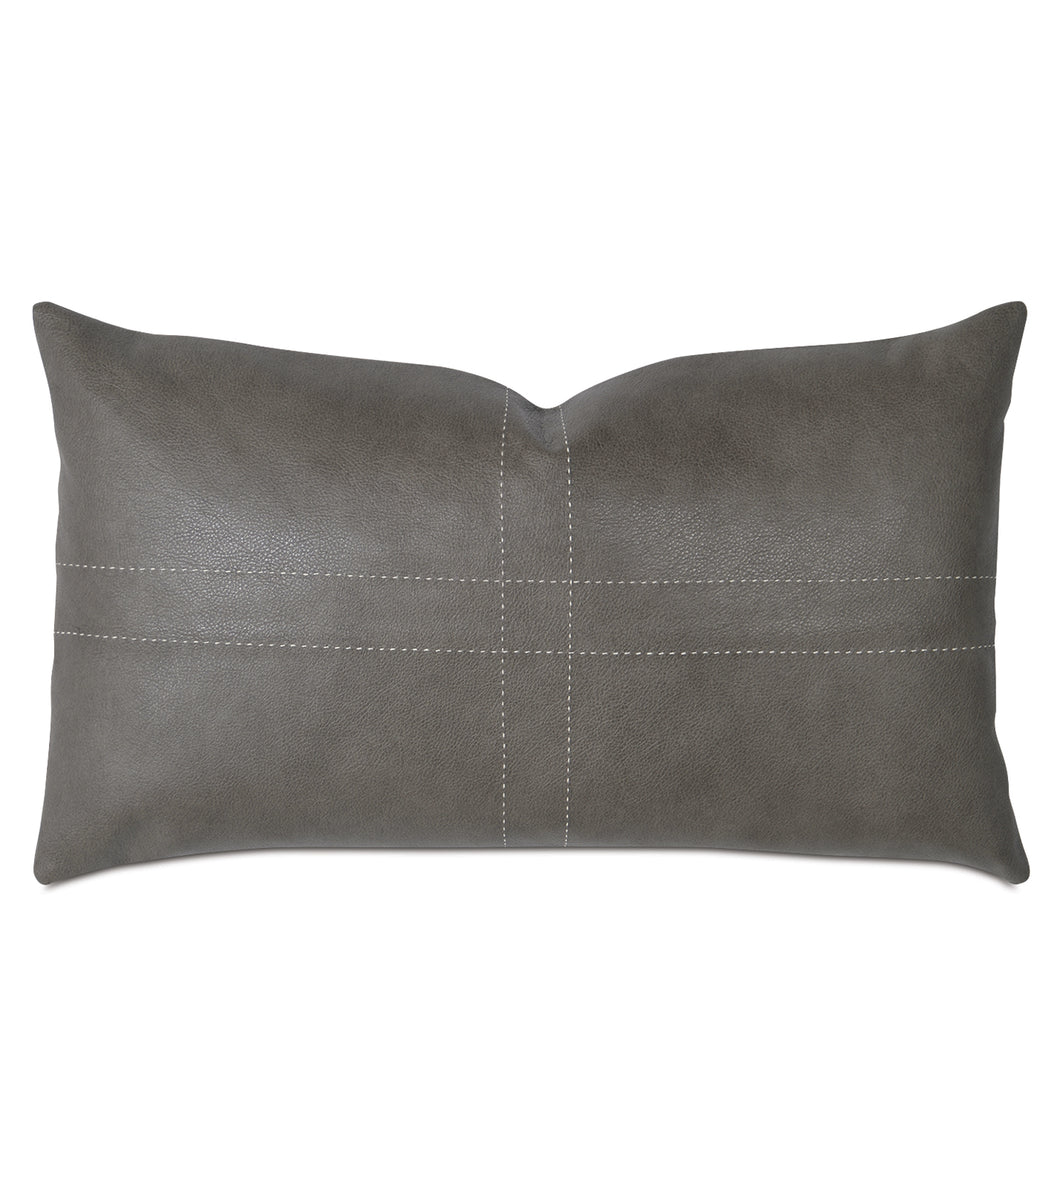 Telluride Cowhide Leather Tailor's Tack Stitch Decorative Pillow 13